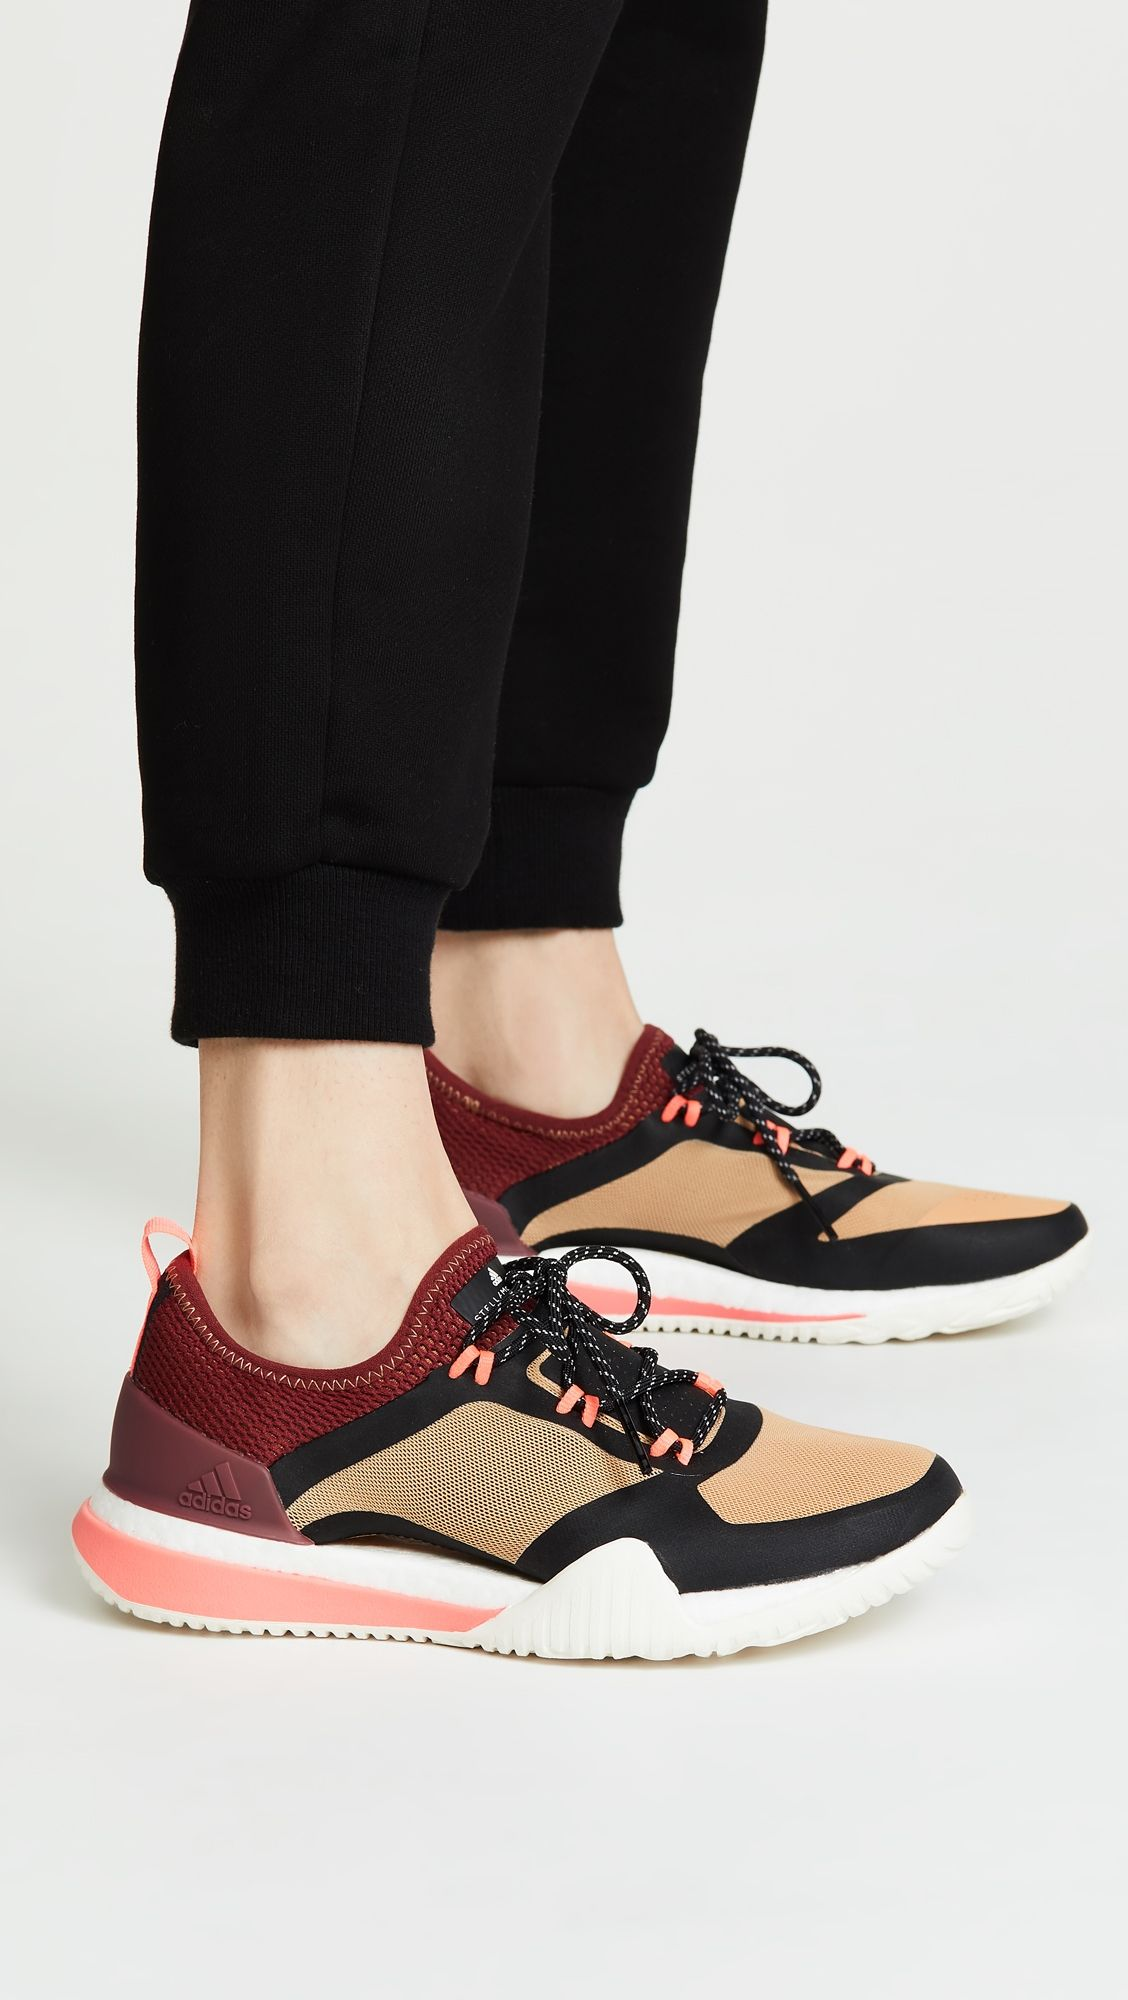 later ever popular 50% off PureBOOST X TR 3.0 Sneakers in 2019 | Stella mccartney ...